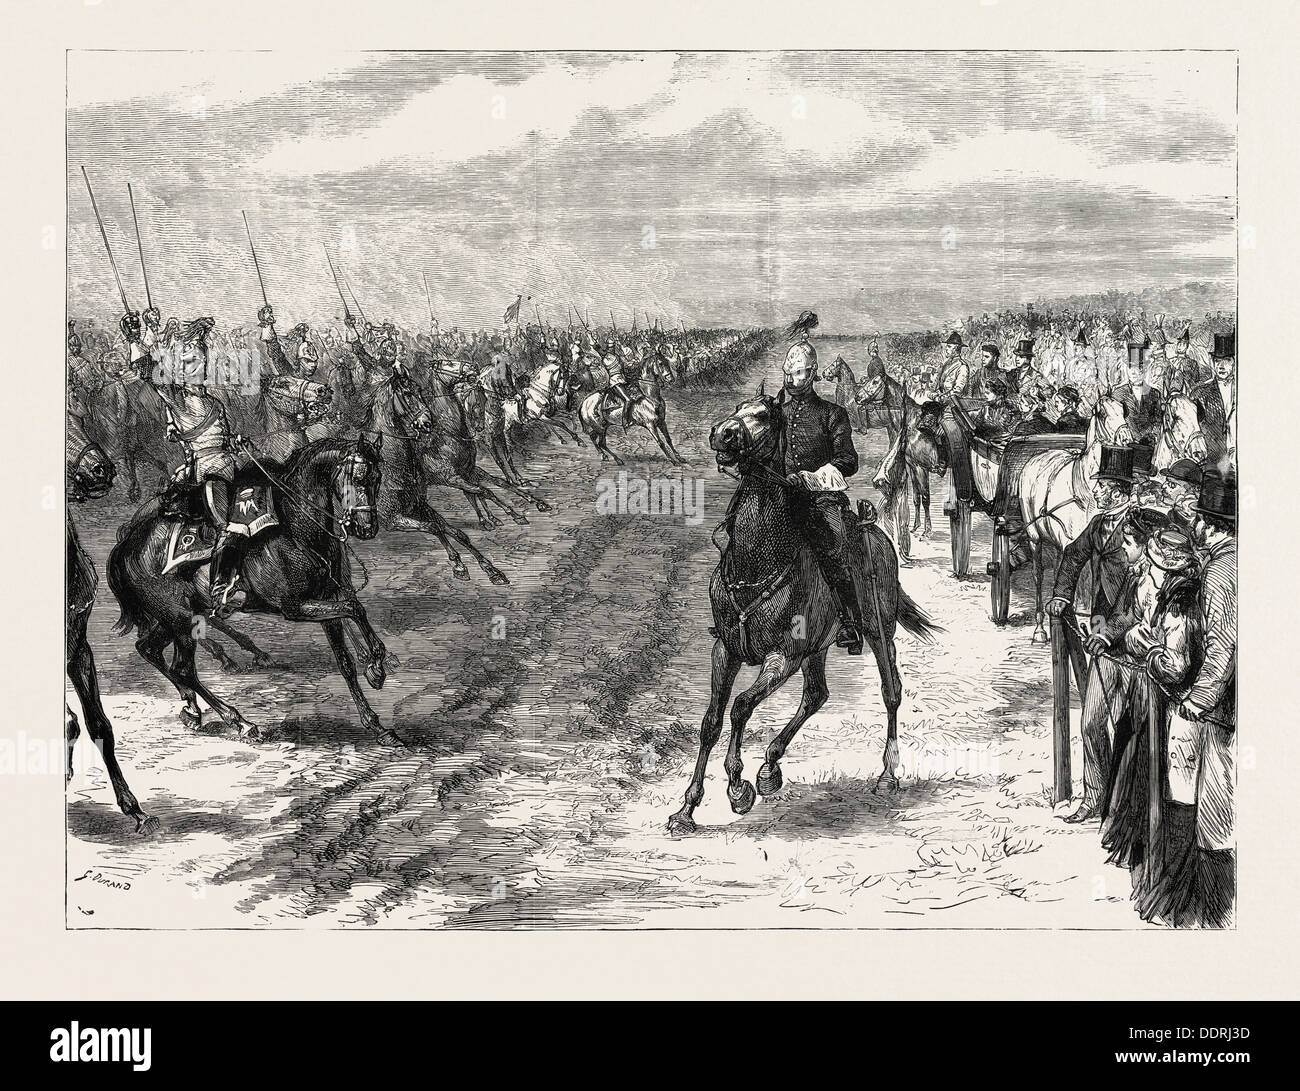 THE REVIEW BEFORE QUEEN VICTORIA AT ALDERSHOT: A CAVALRY CHARGE, HALT, UK - Stock Image